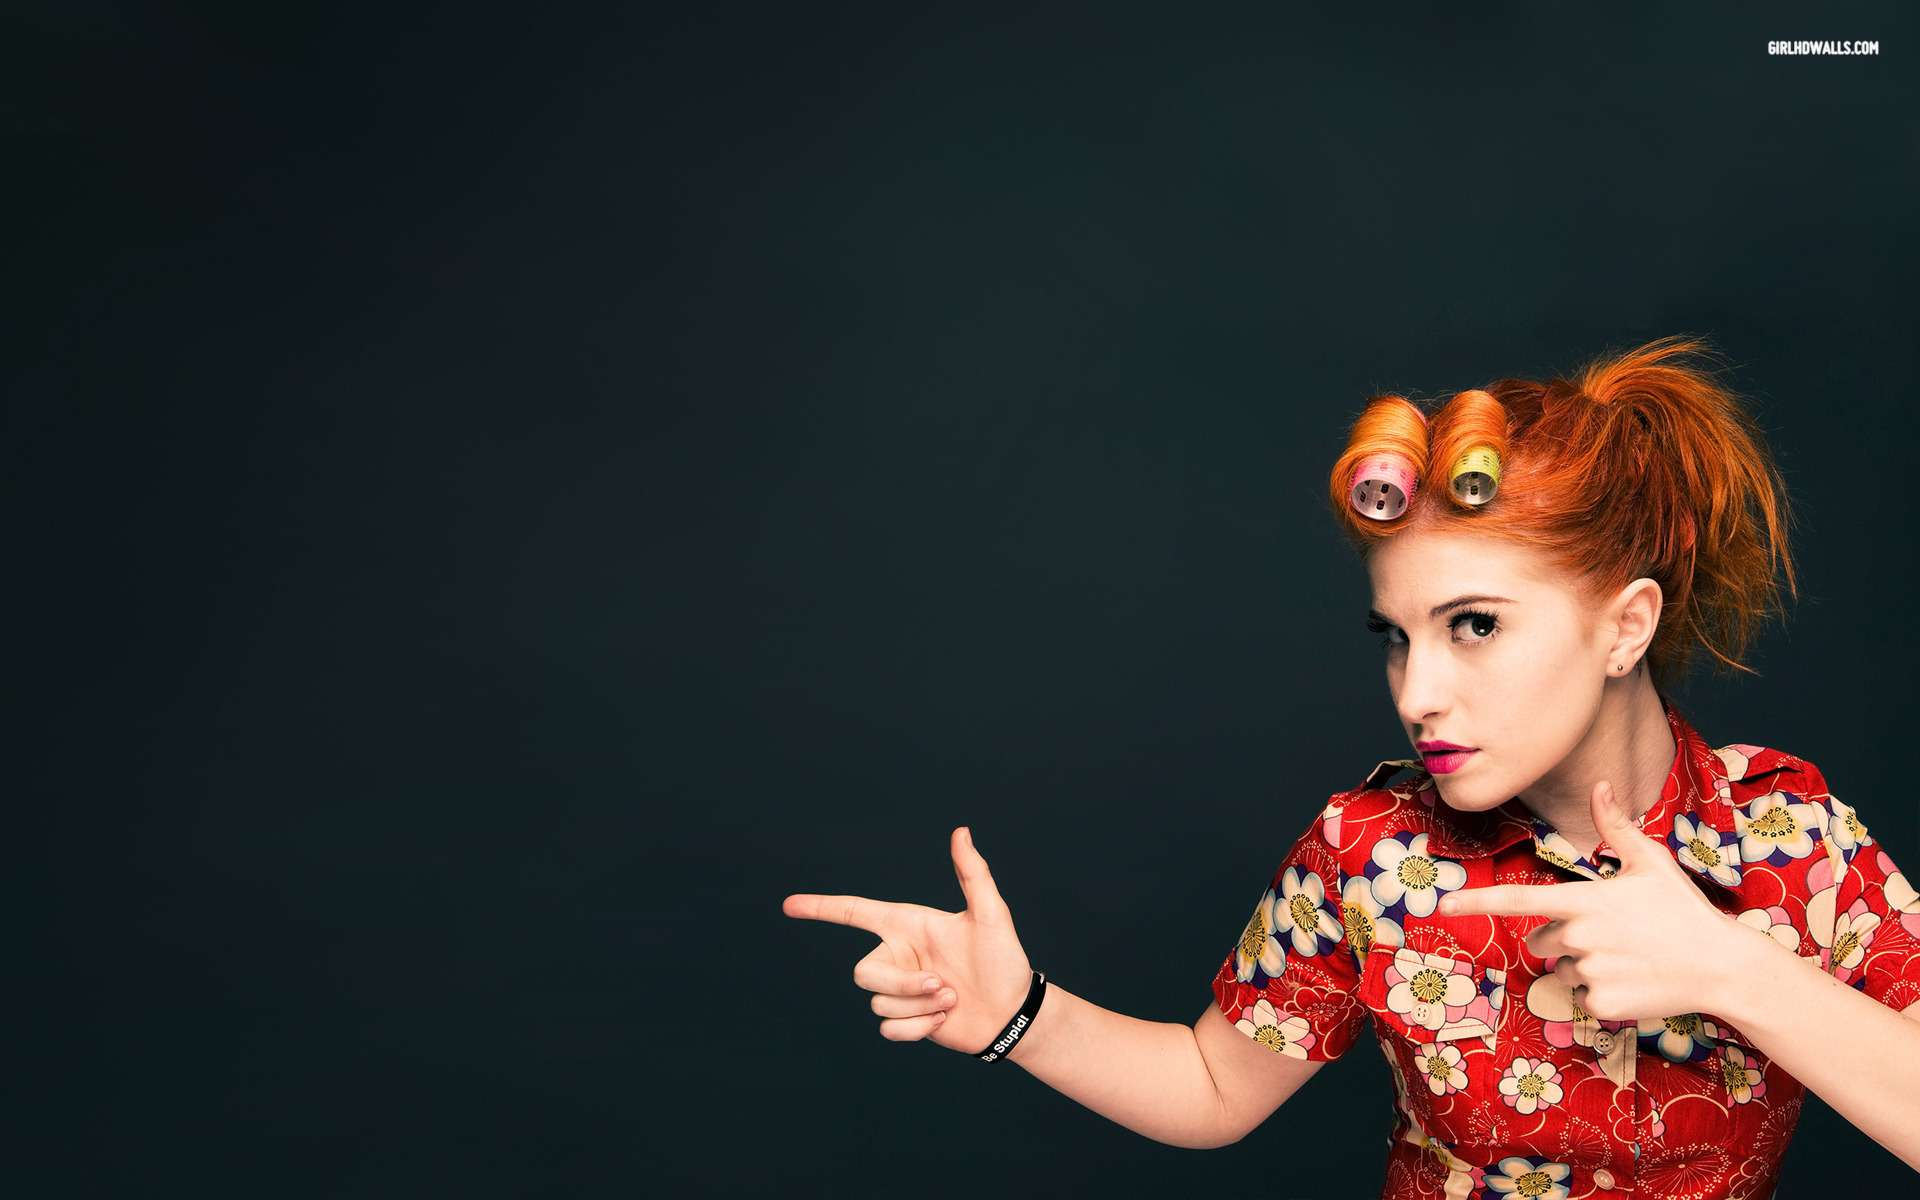 Hd Fantasy Girl Wallpapers 1080p Hayley Williams 10 Wallpapers Hd Wallpapers